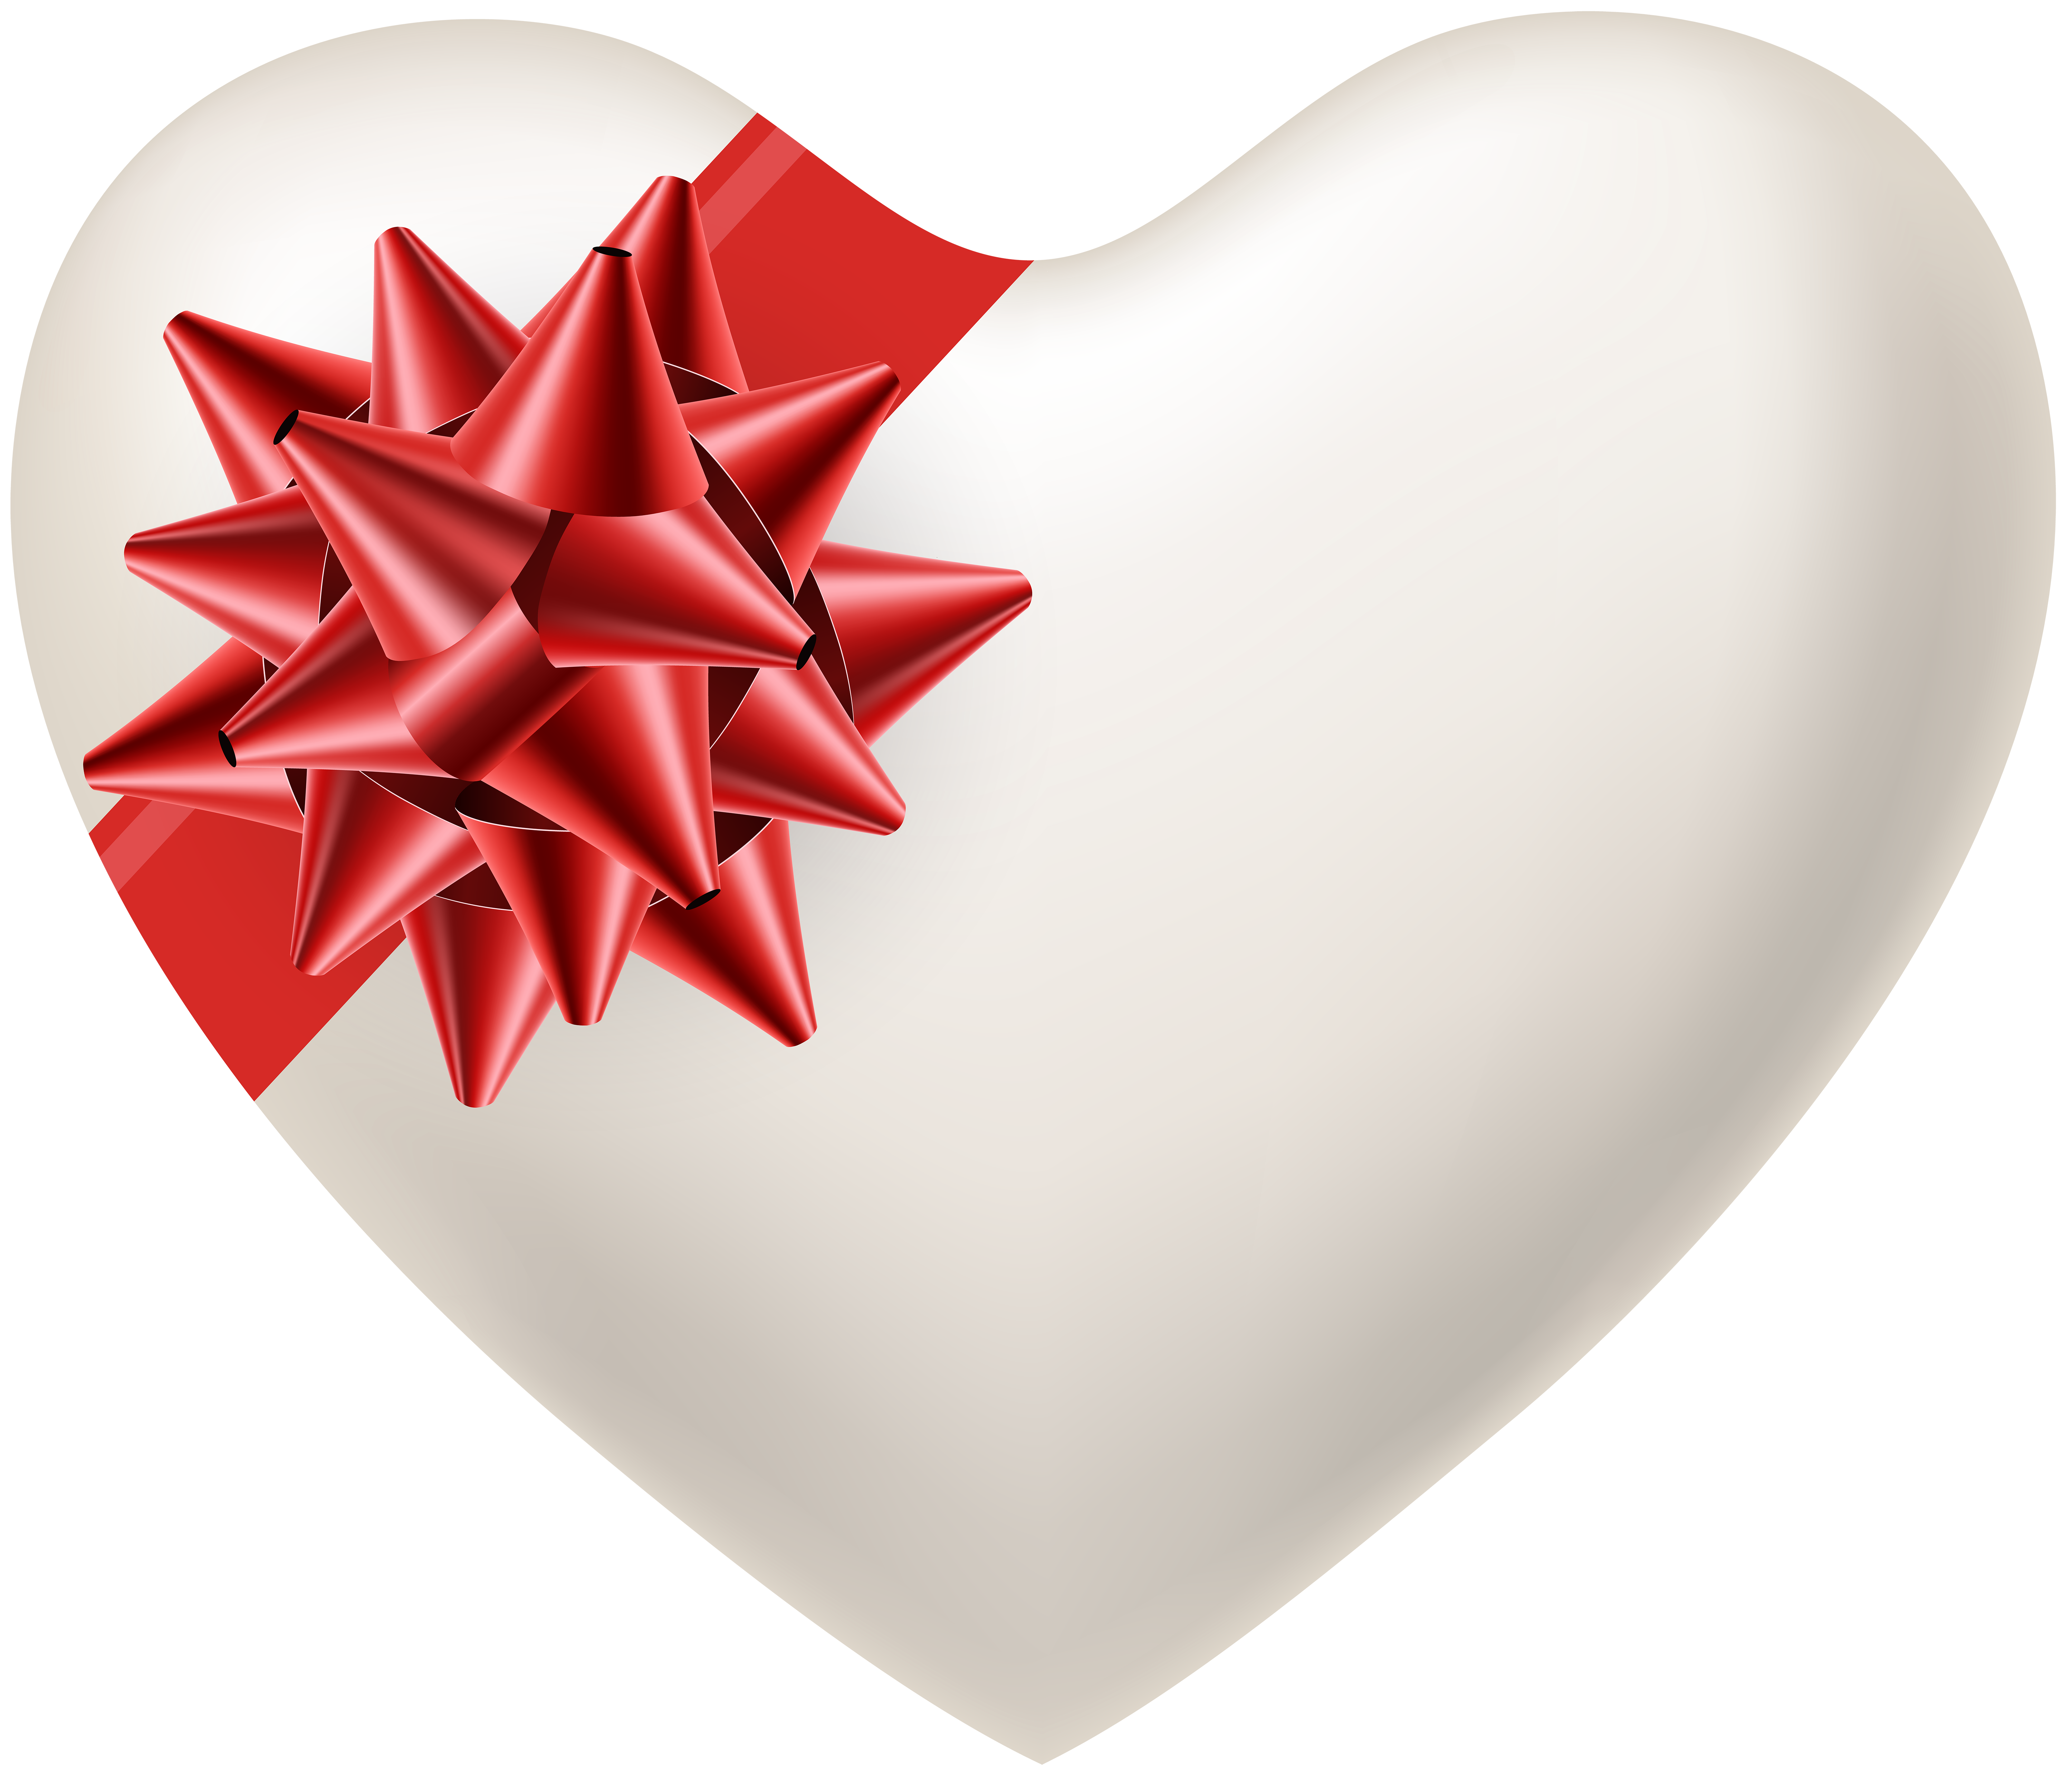 Png white heart. With red bow transparent